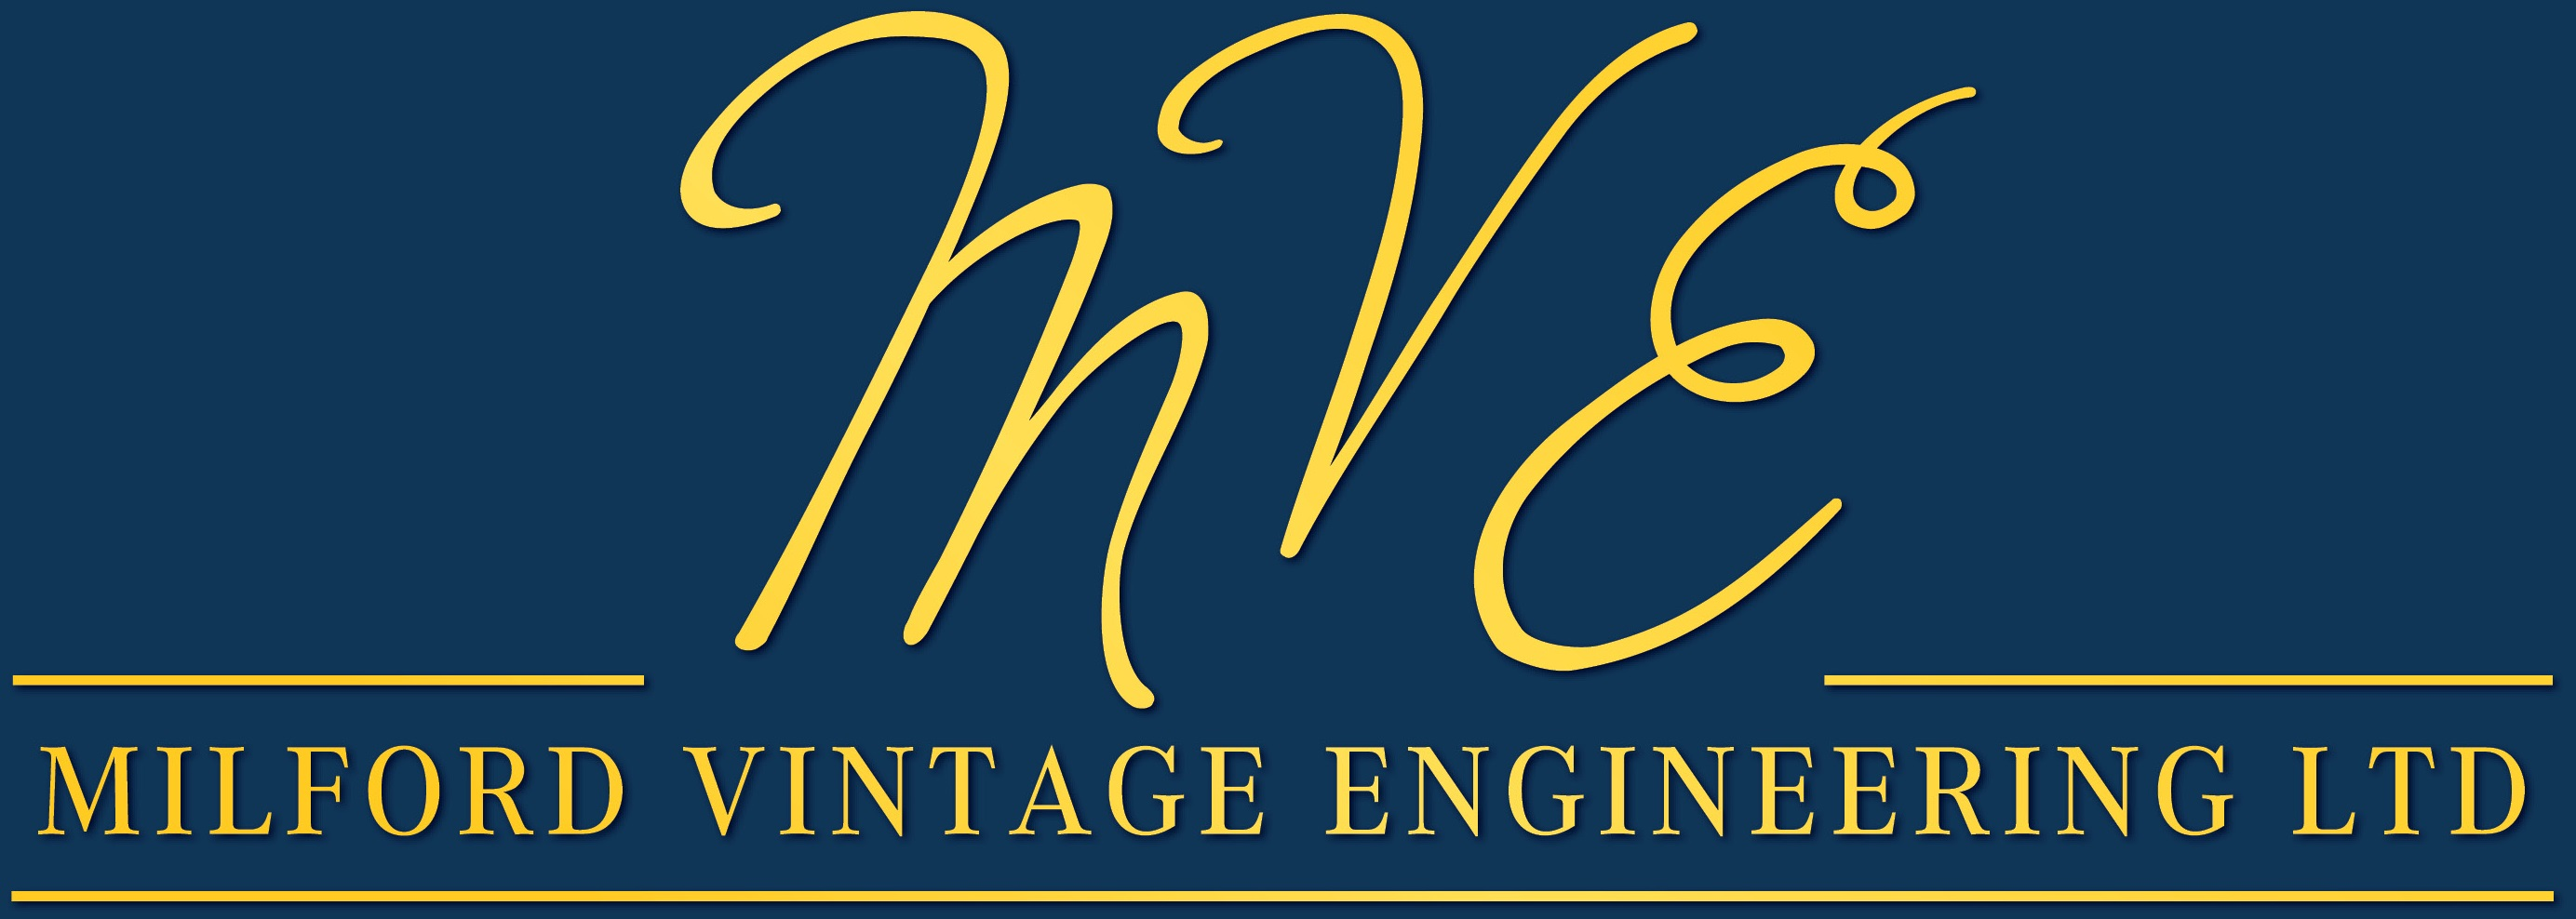 MILFORD VINTAGE ENGINEERING